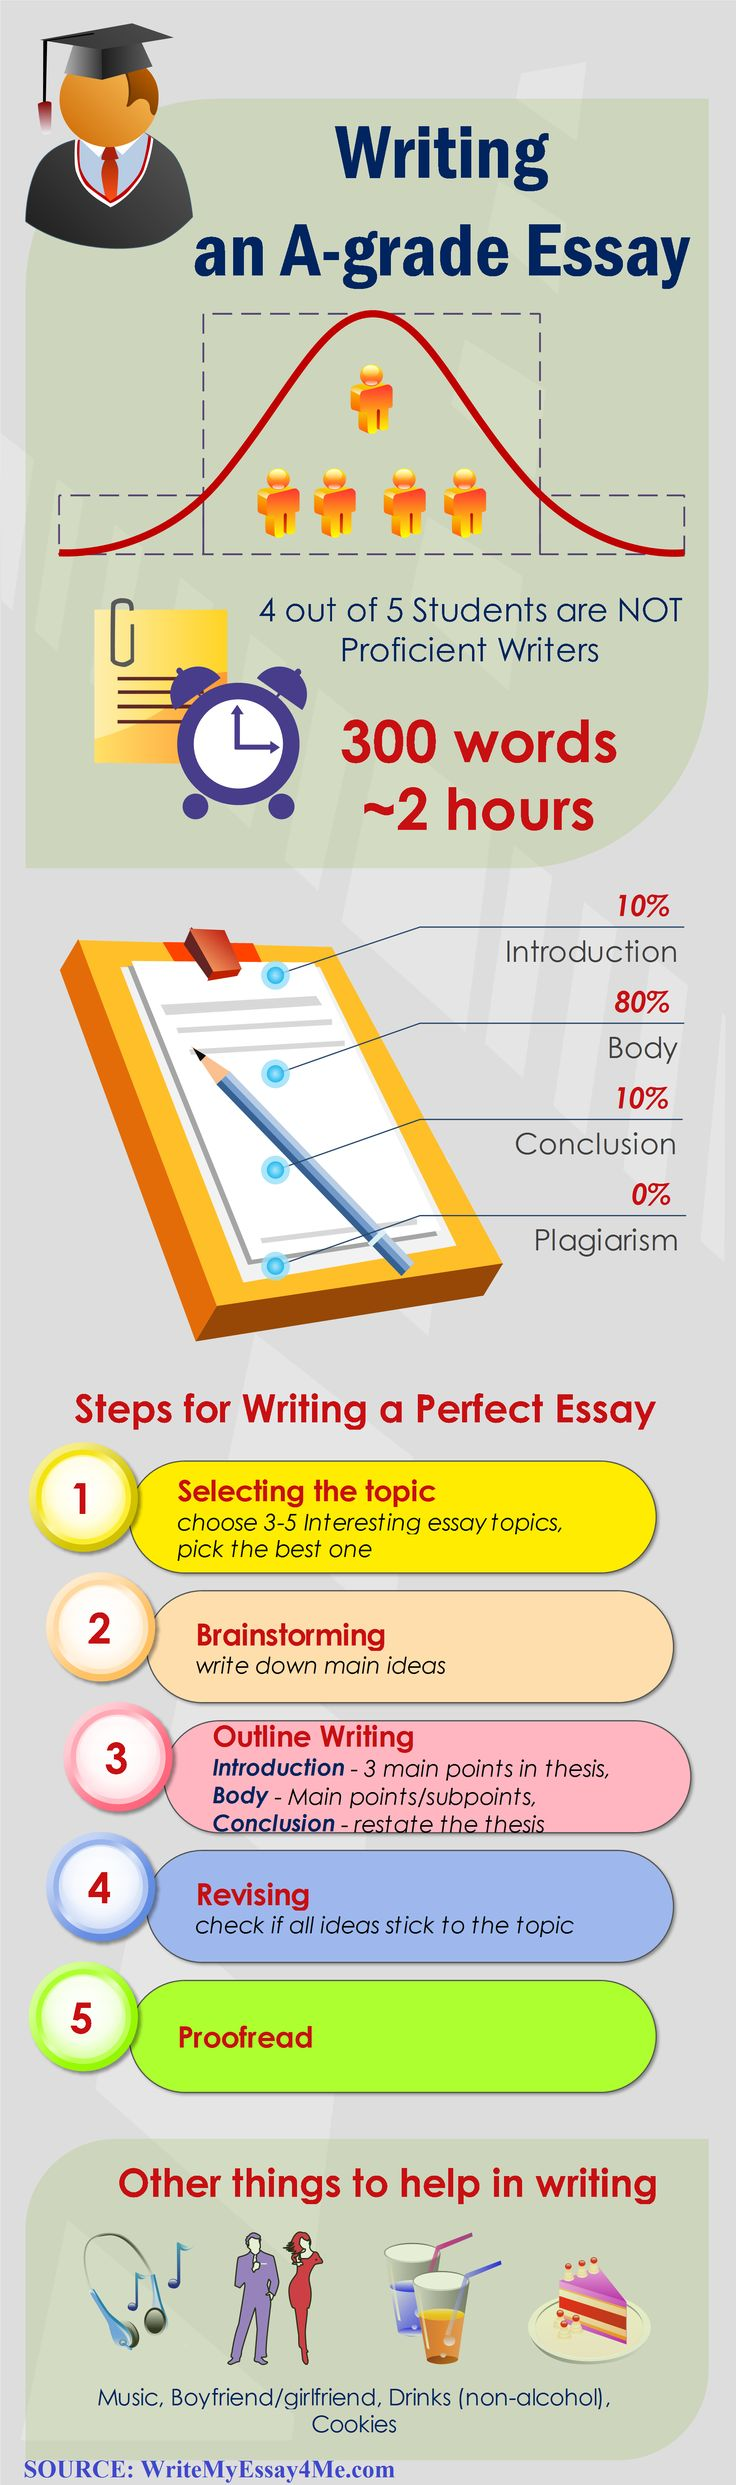 College Essay Writing Help from Trusted Essay Writing Service